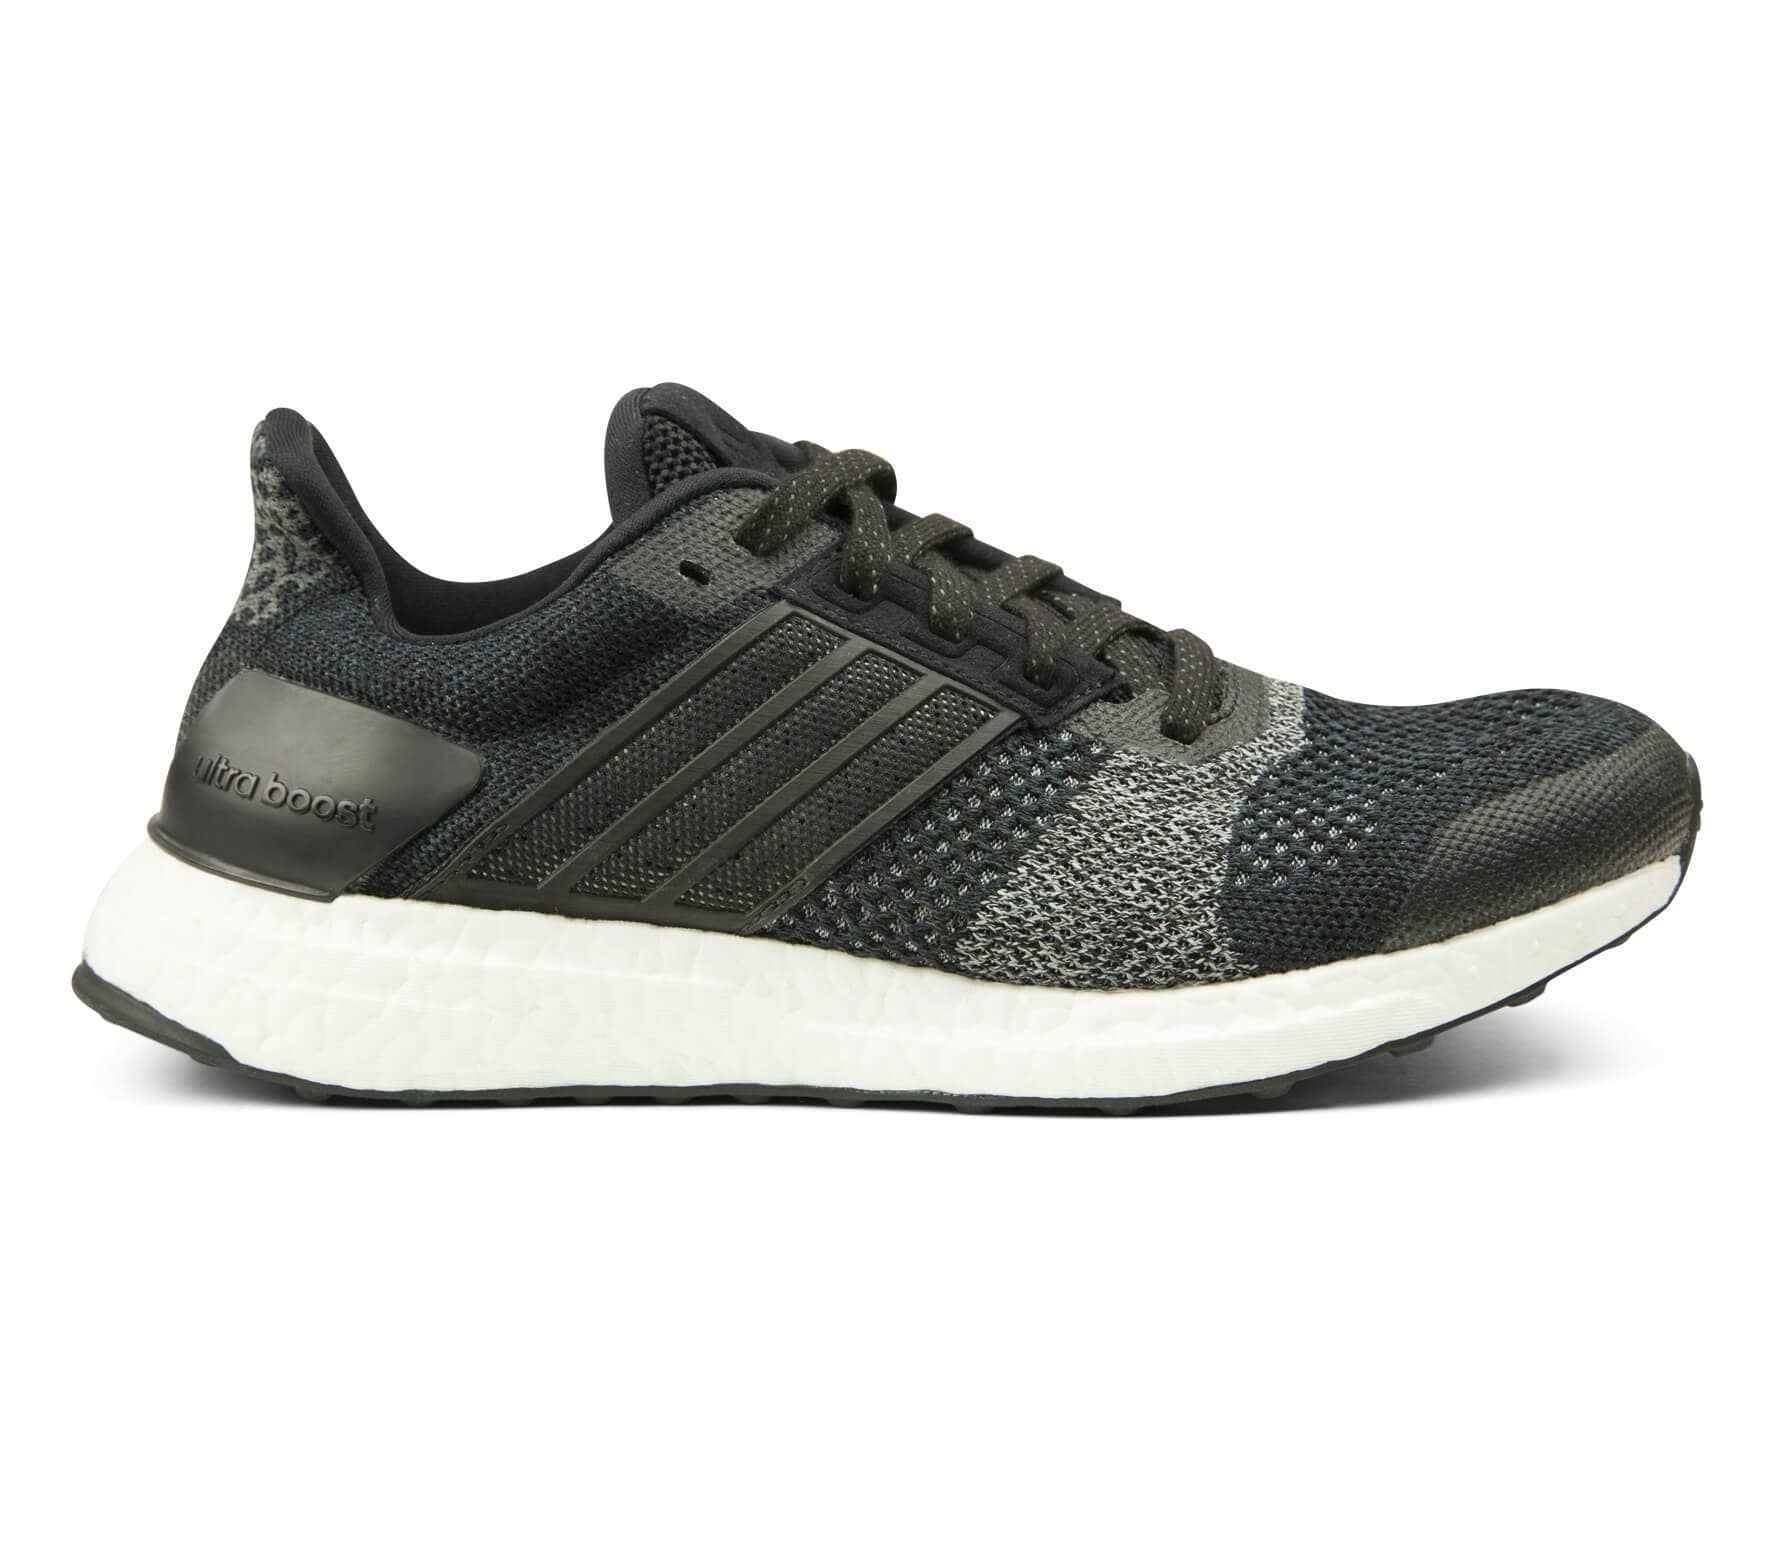 finest selection d7934 11fc9 Adidas - Ultra Boost ST Glow Mujer Zapatos para correr (negro)